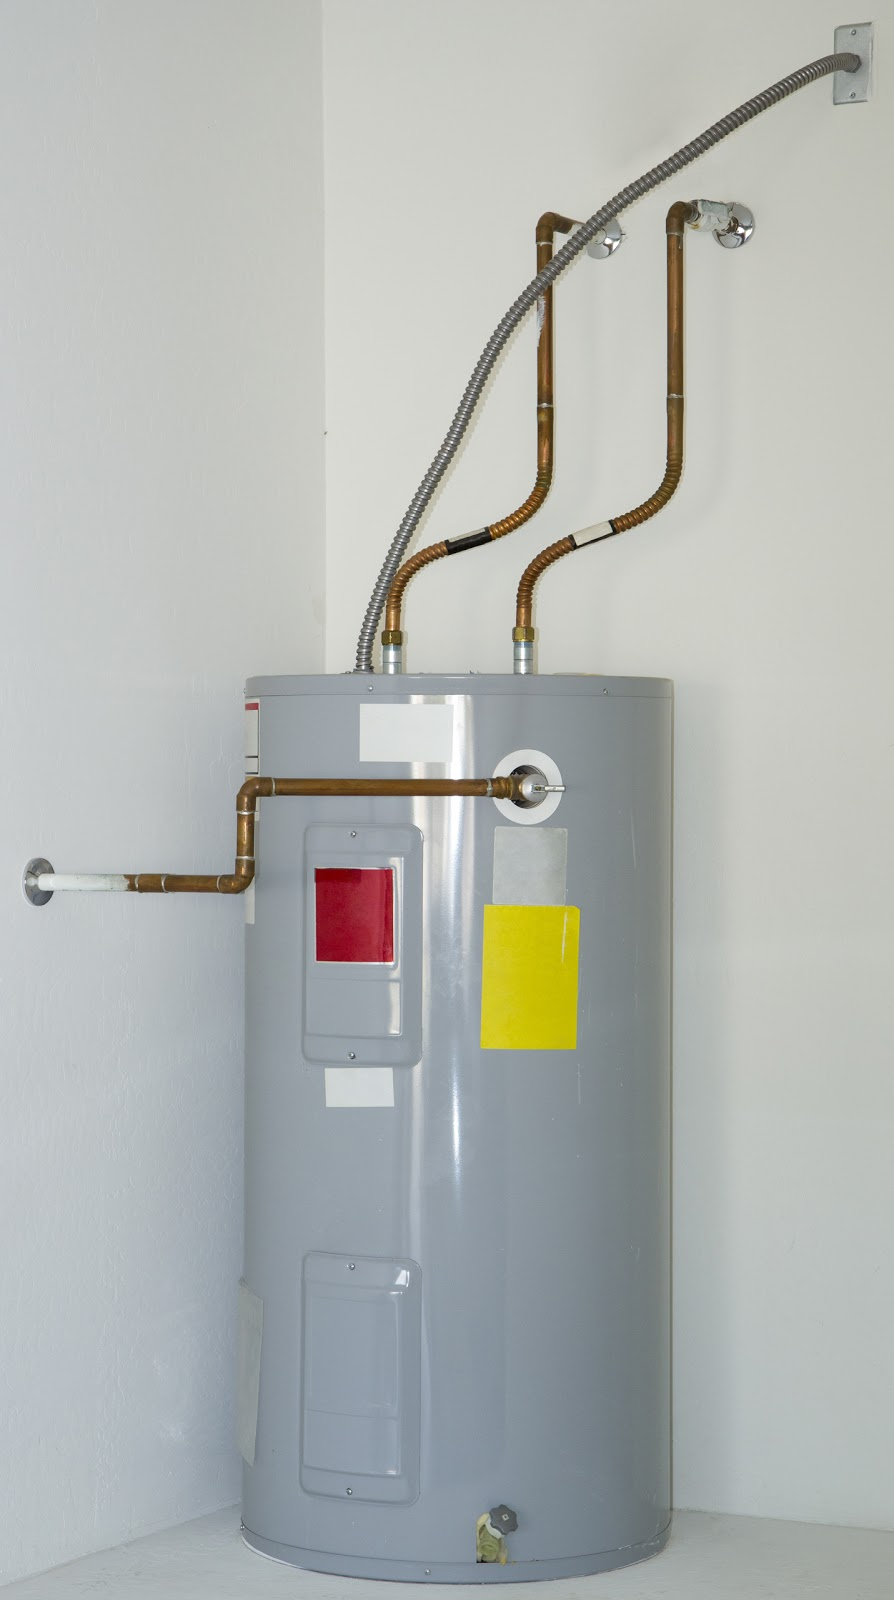 Property Maintenance Manager: Is it time to replace a leaky